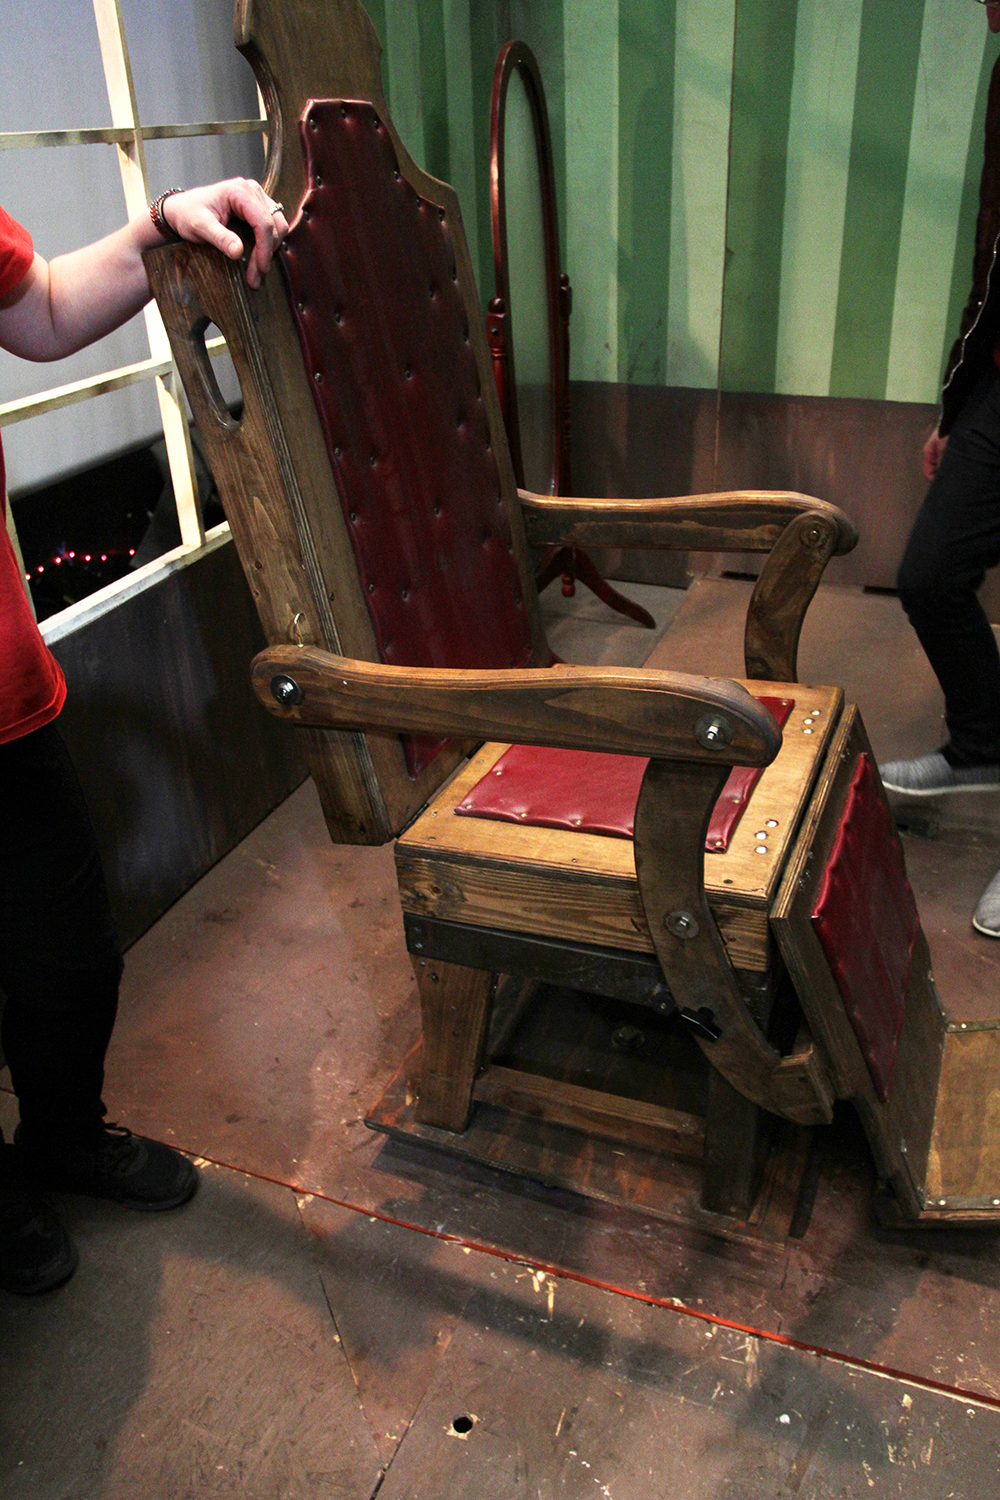 Built in 6 weeks, the chair swivels, dips, and locks back into place. Eerily realistic.